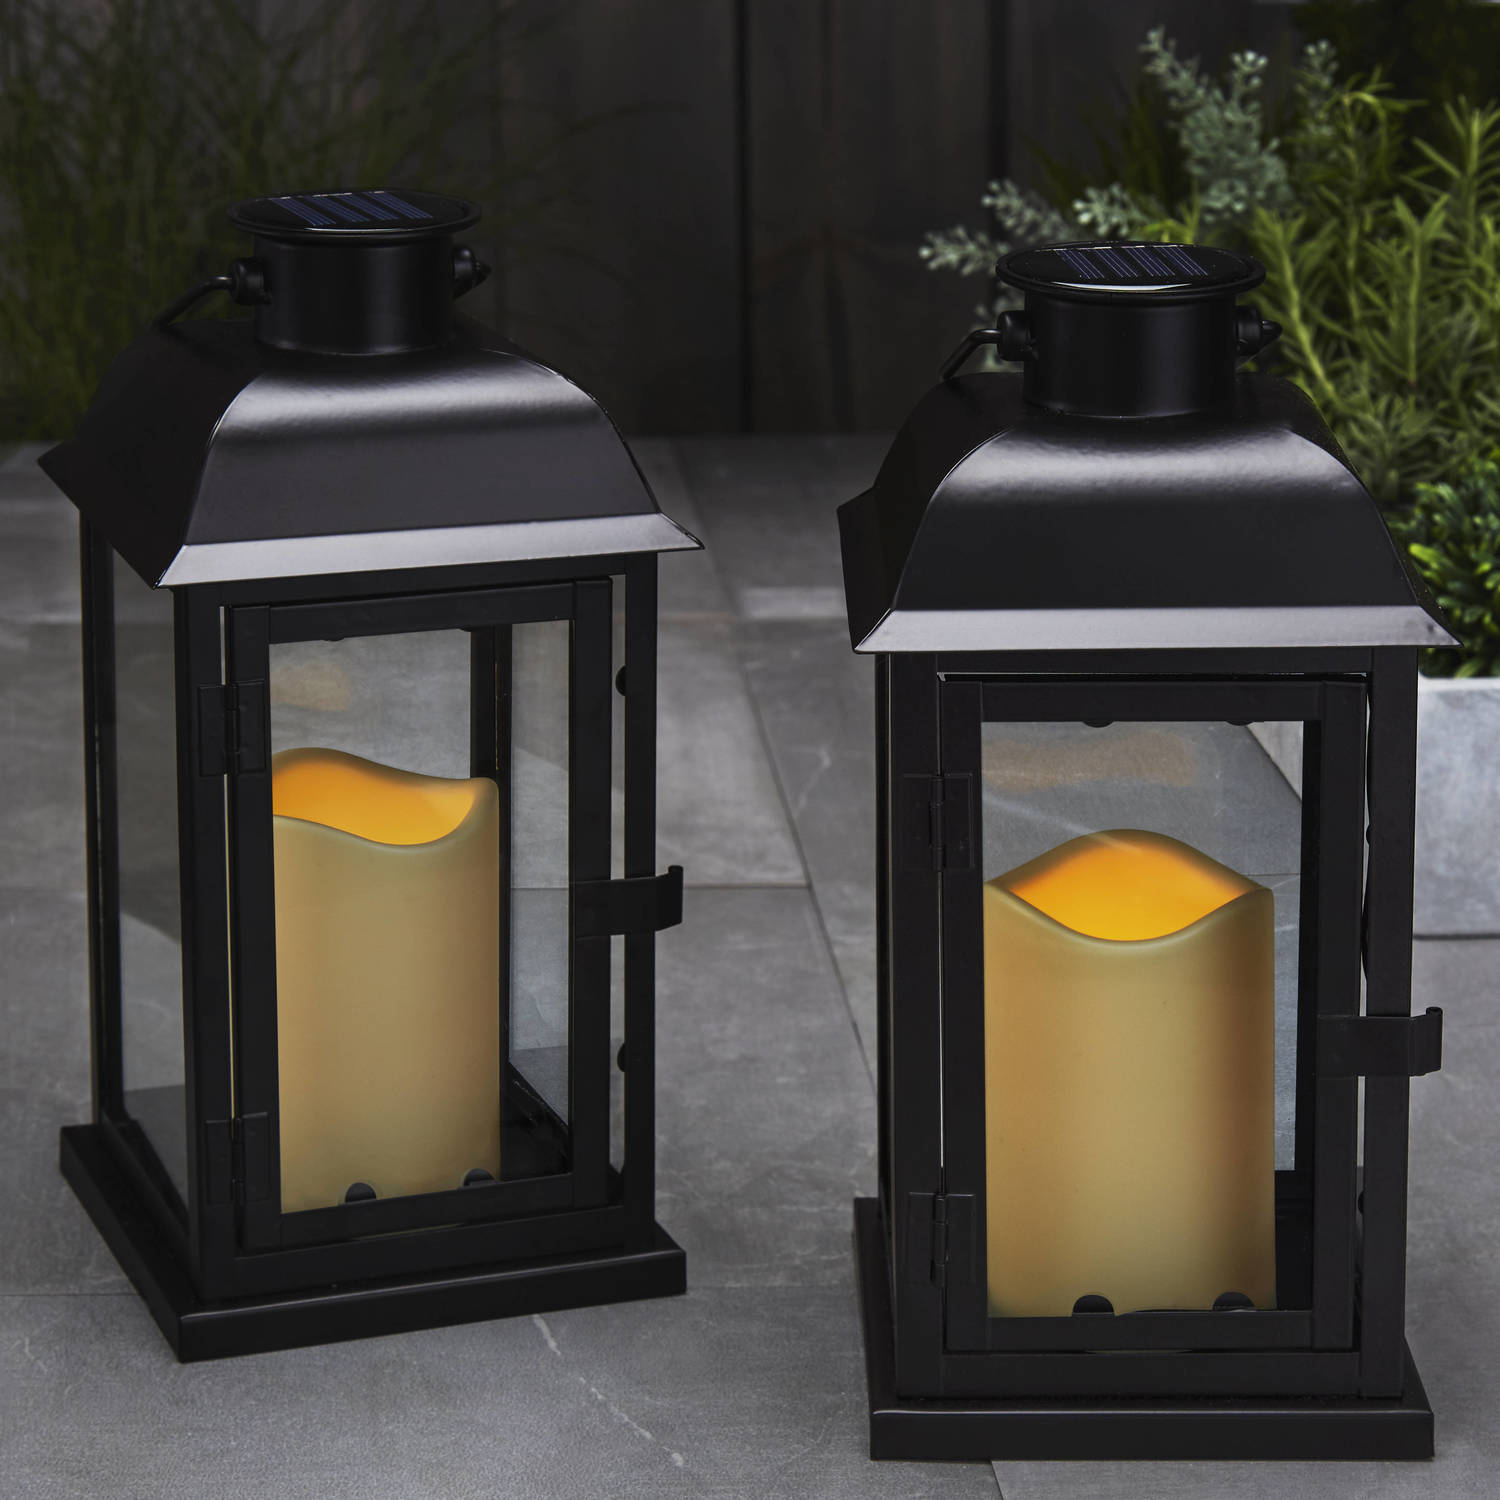 Solar Wall Lantern Lights : Lights.com Flameless Candles Lanterns Solar 11.5